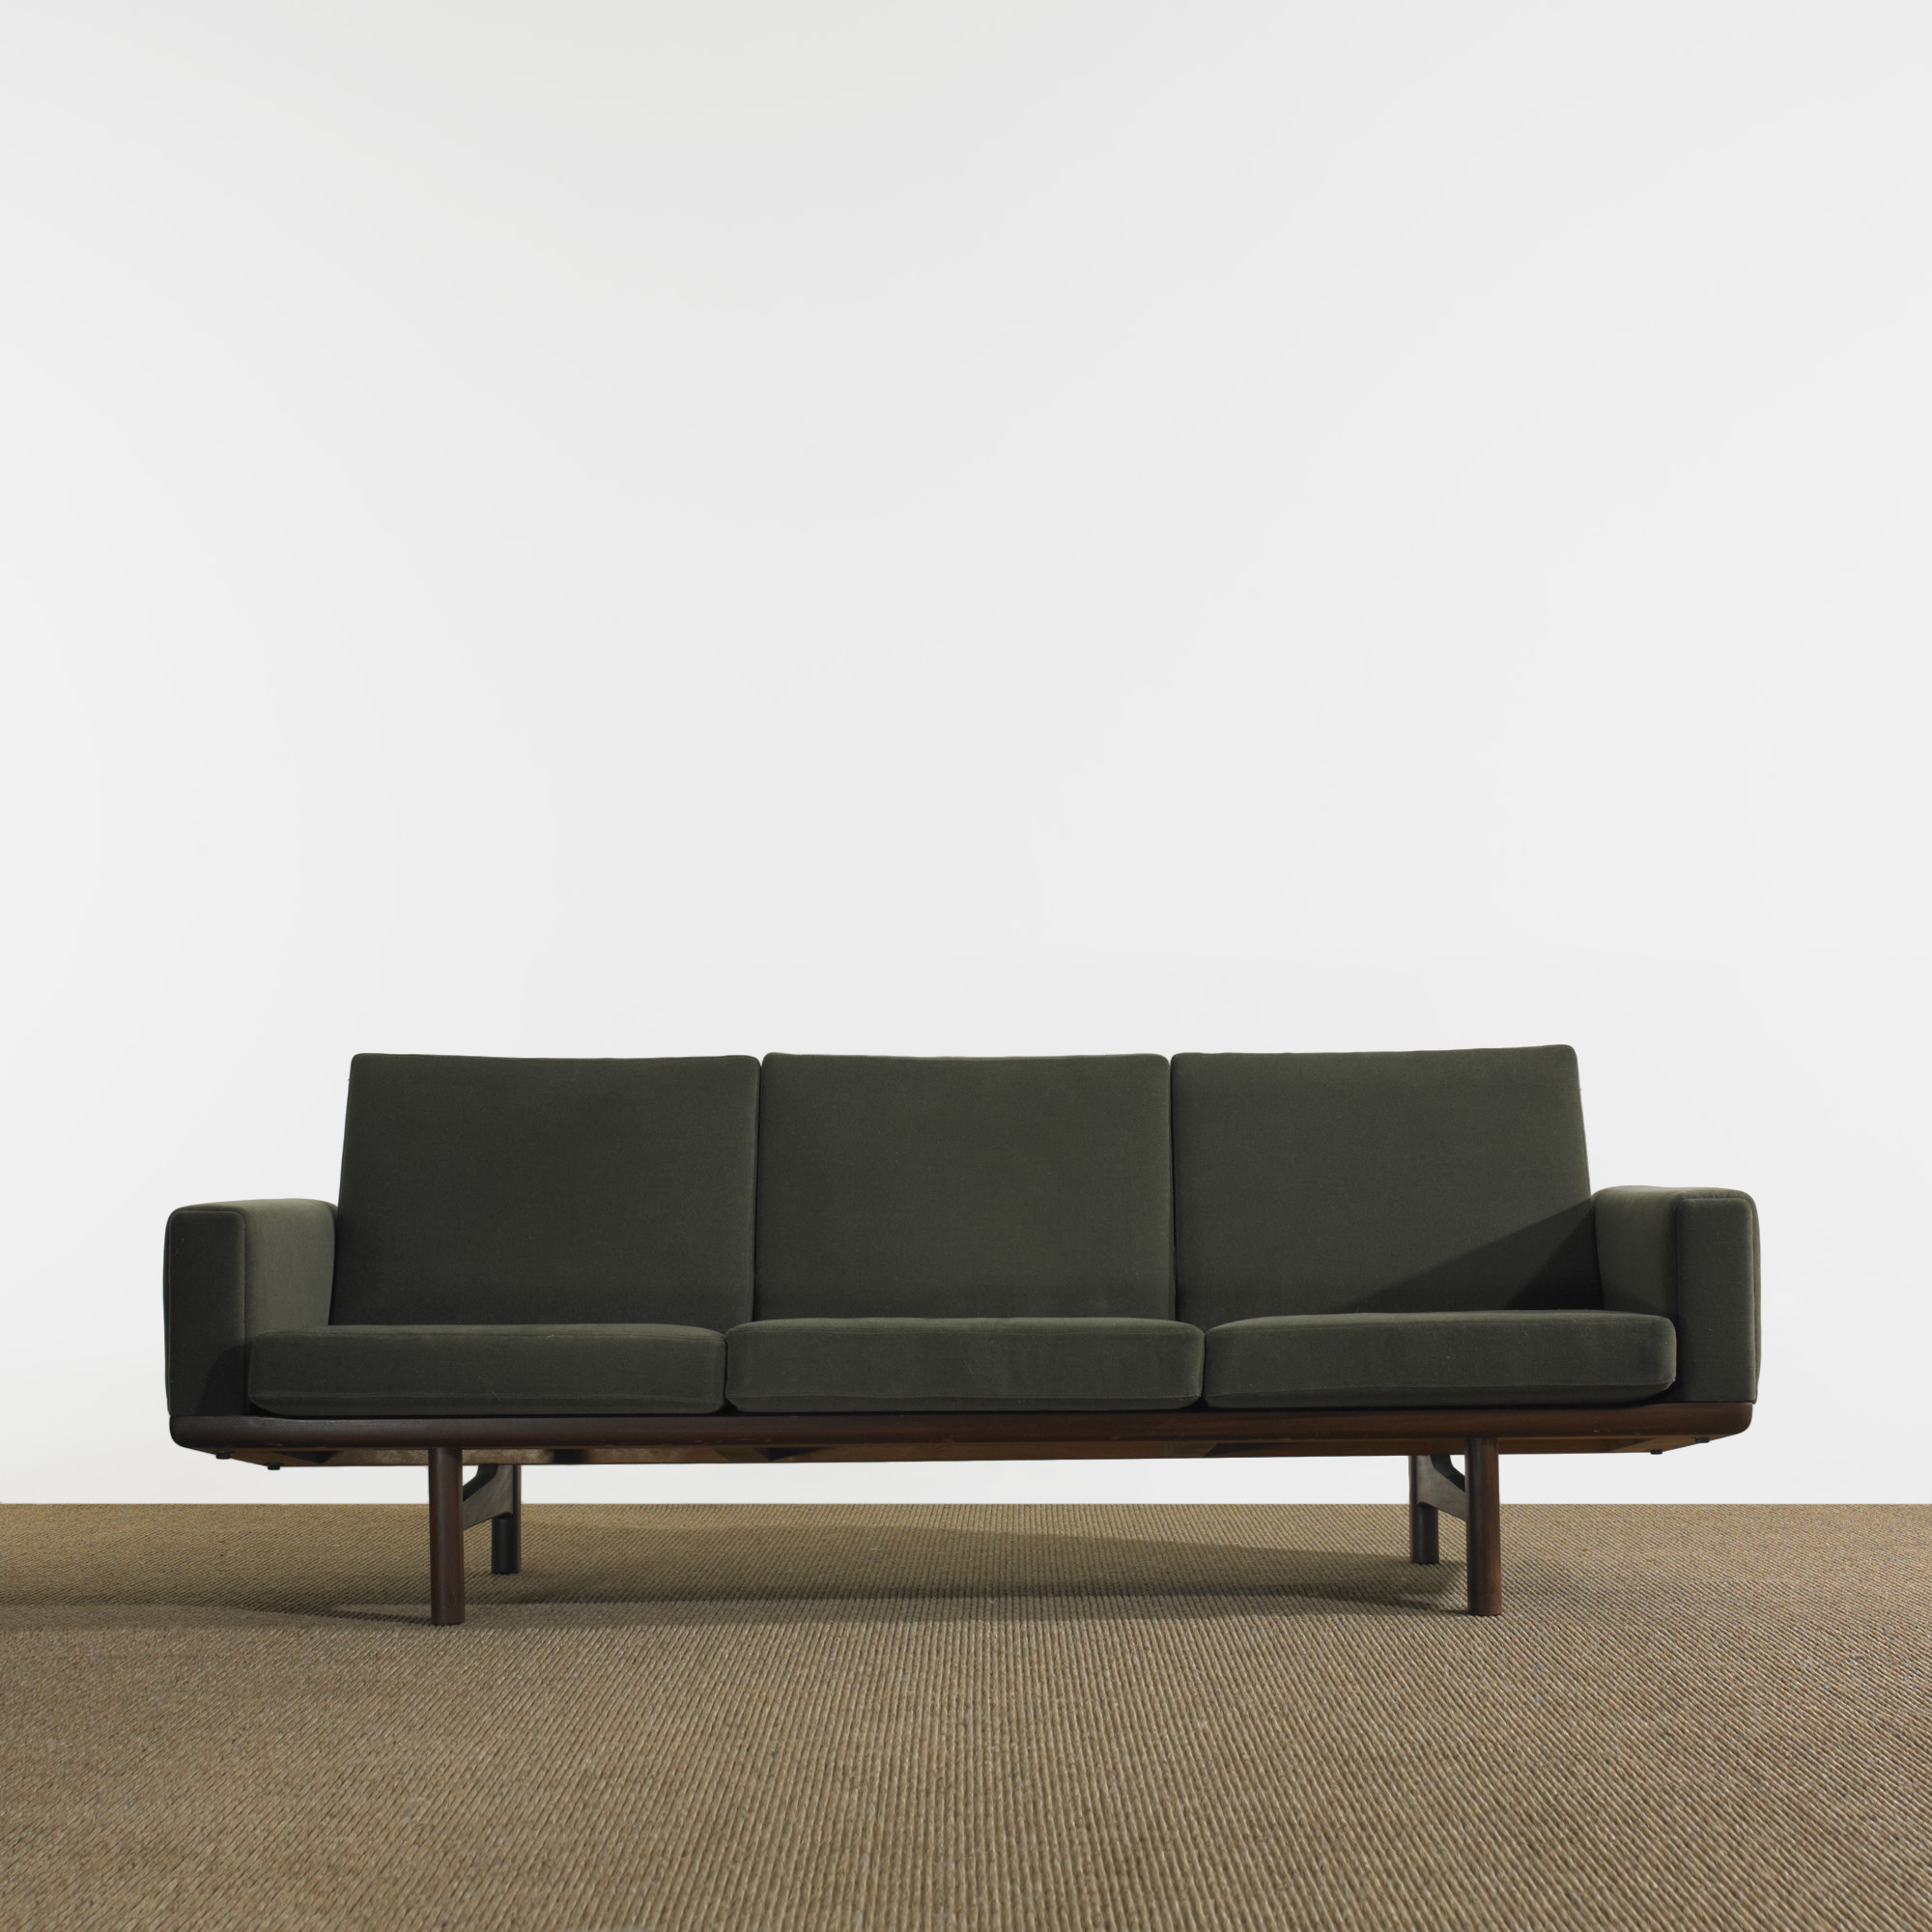 Hans Wegner Sofa Replica Charles Eames Chair Nachbau Hans Wegner Sofa 236 Replica Regarding